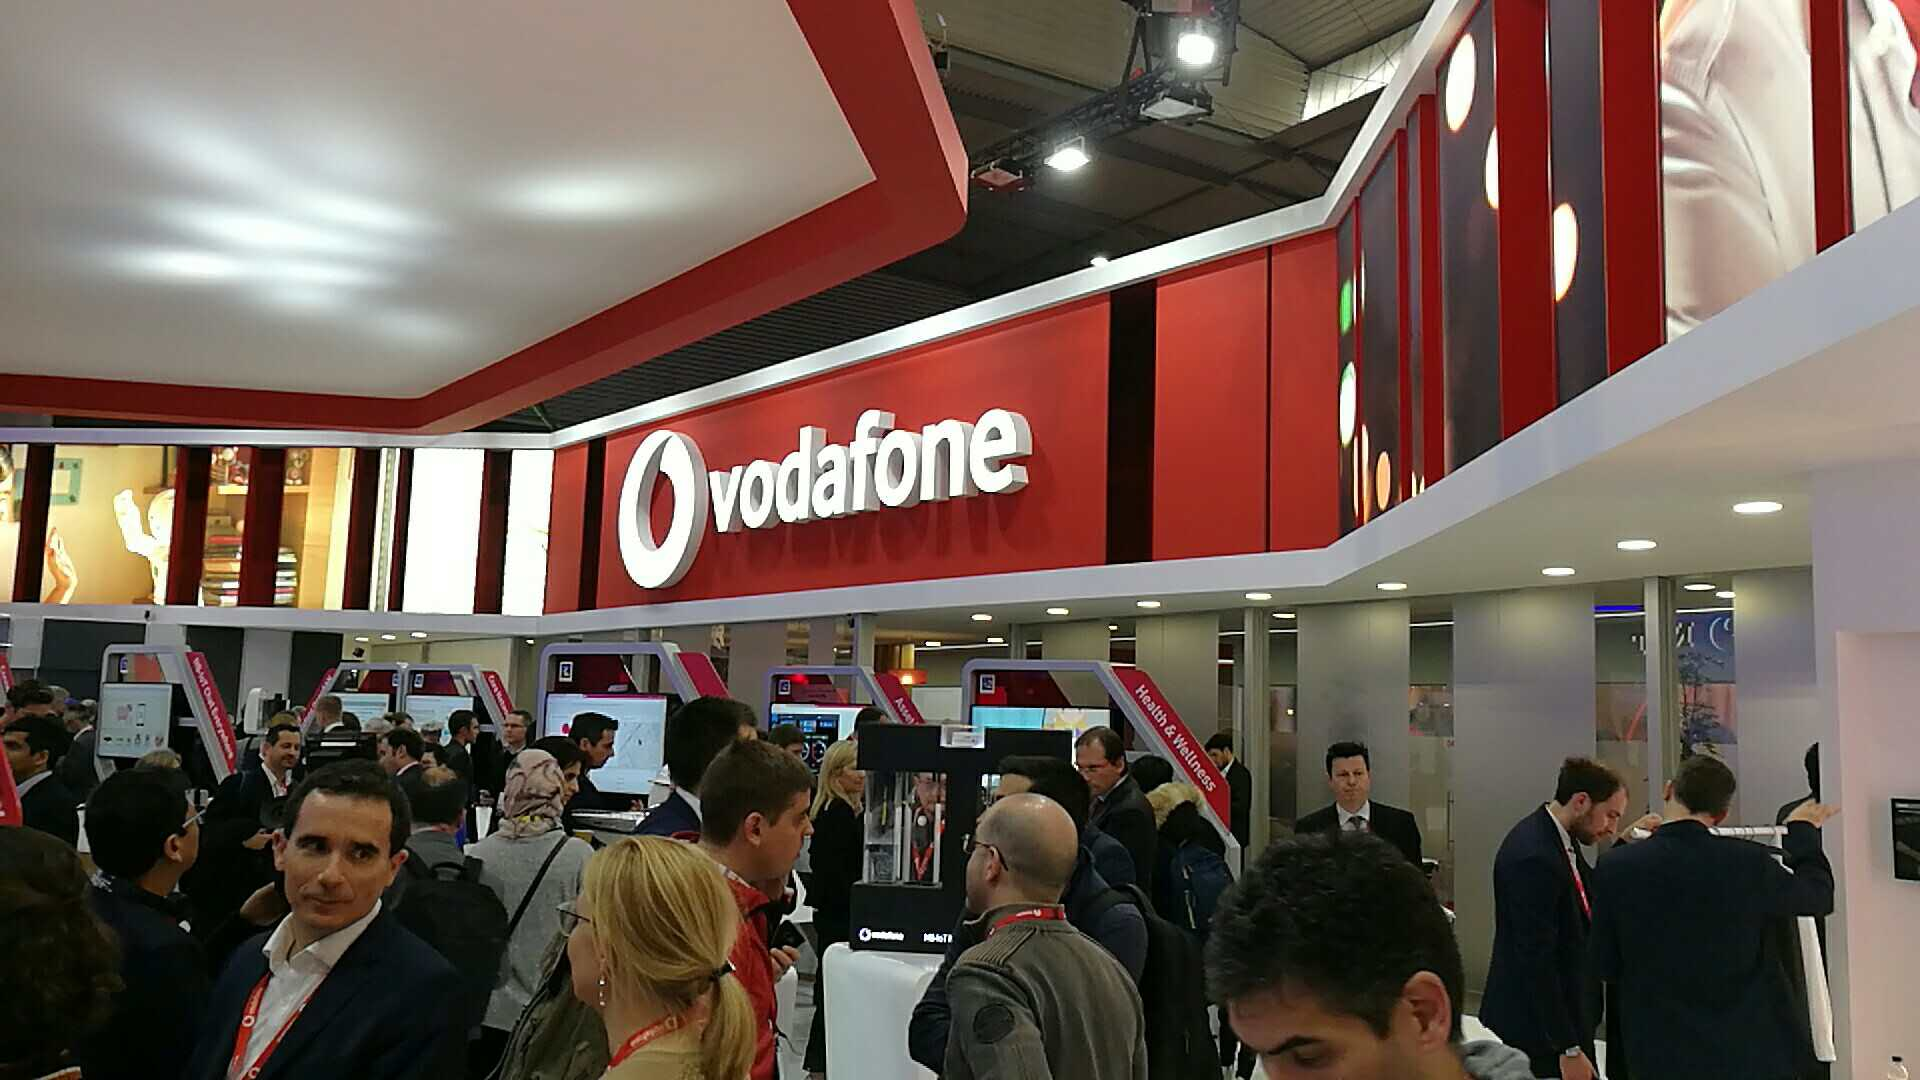 The 2018 Mobile World Congress, MWC2018 for short